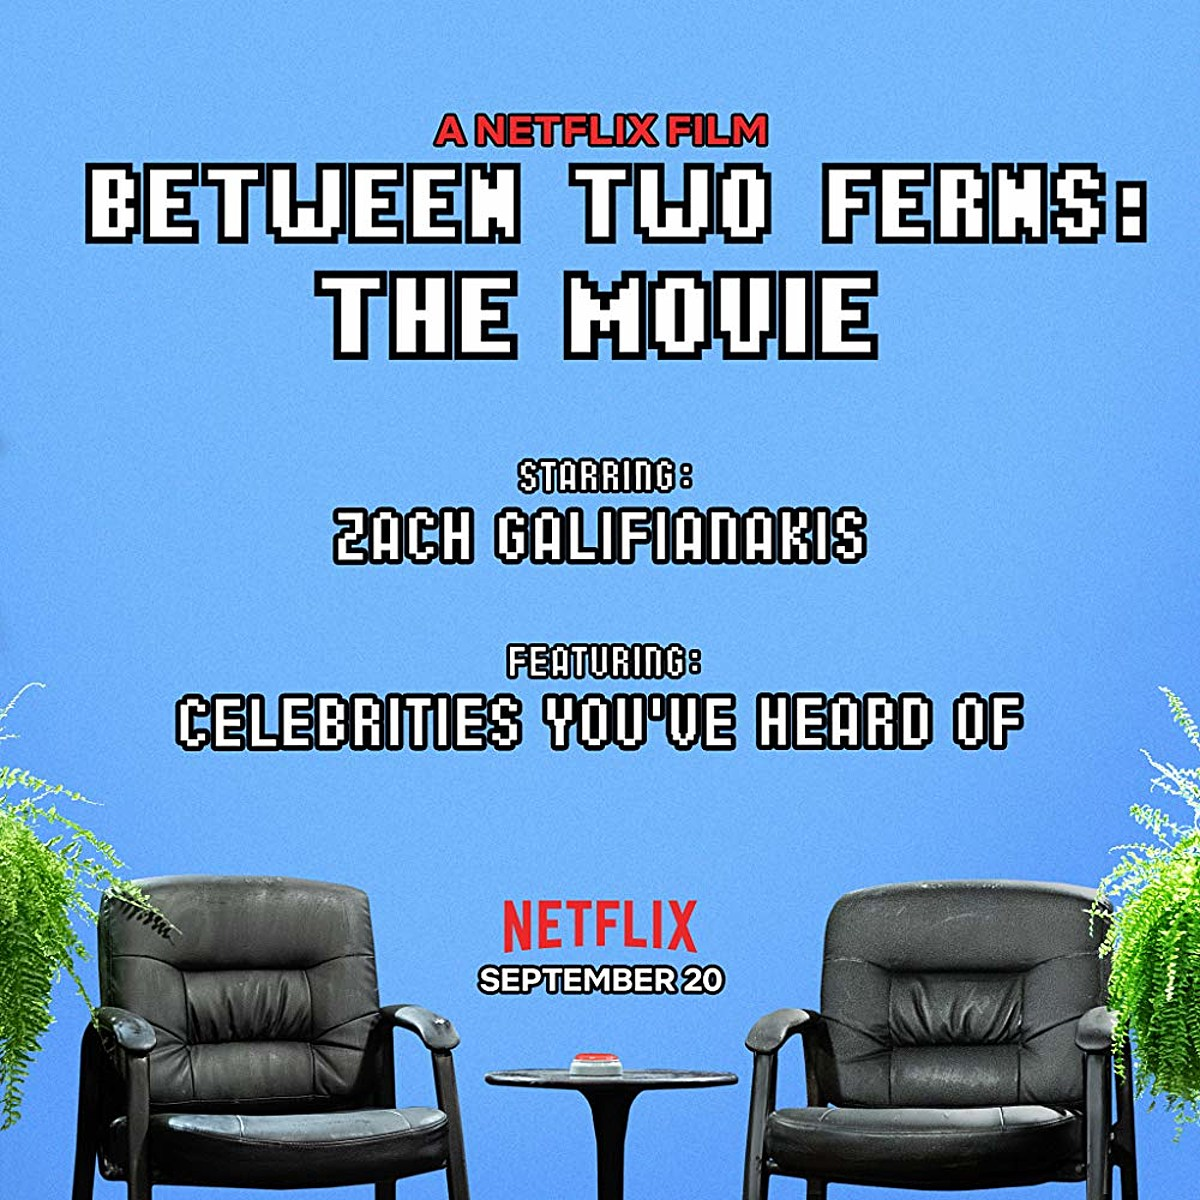 Zach Galifianakis' 'Between Two Ferns: The Movie' debuts on Netflix this month (watch the trailer)